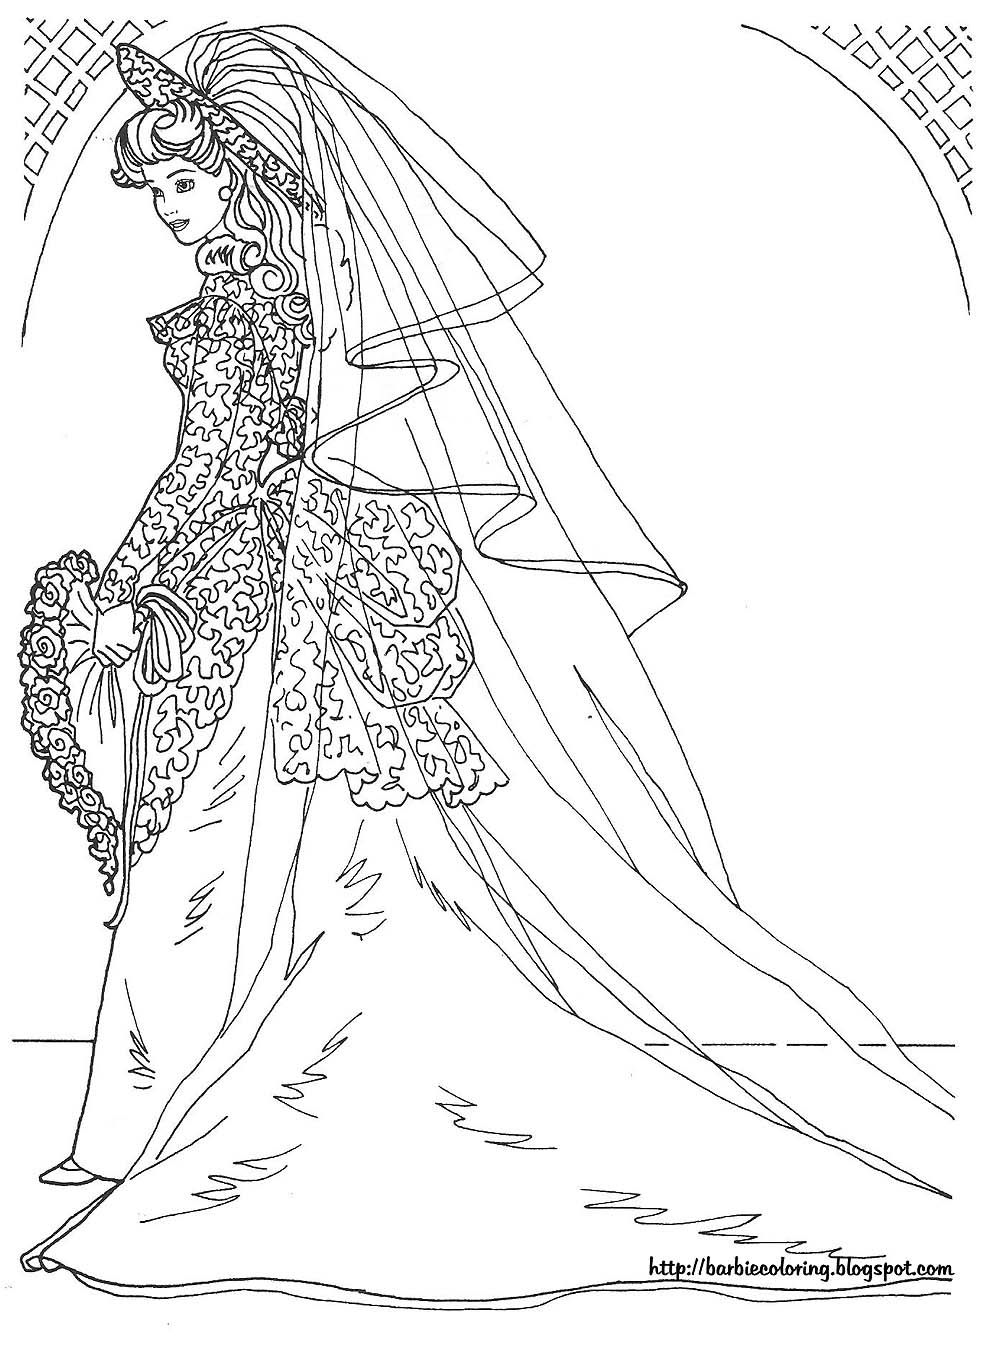 Barbie Coloring Pages Barbie Wedding Dress Coloring Pages